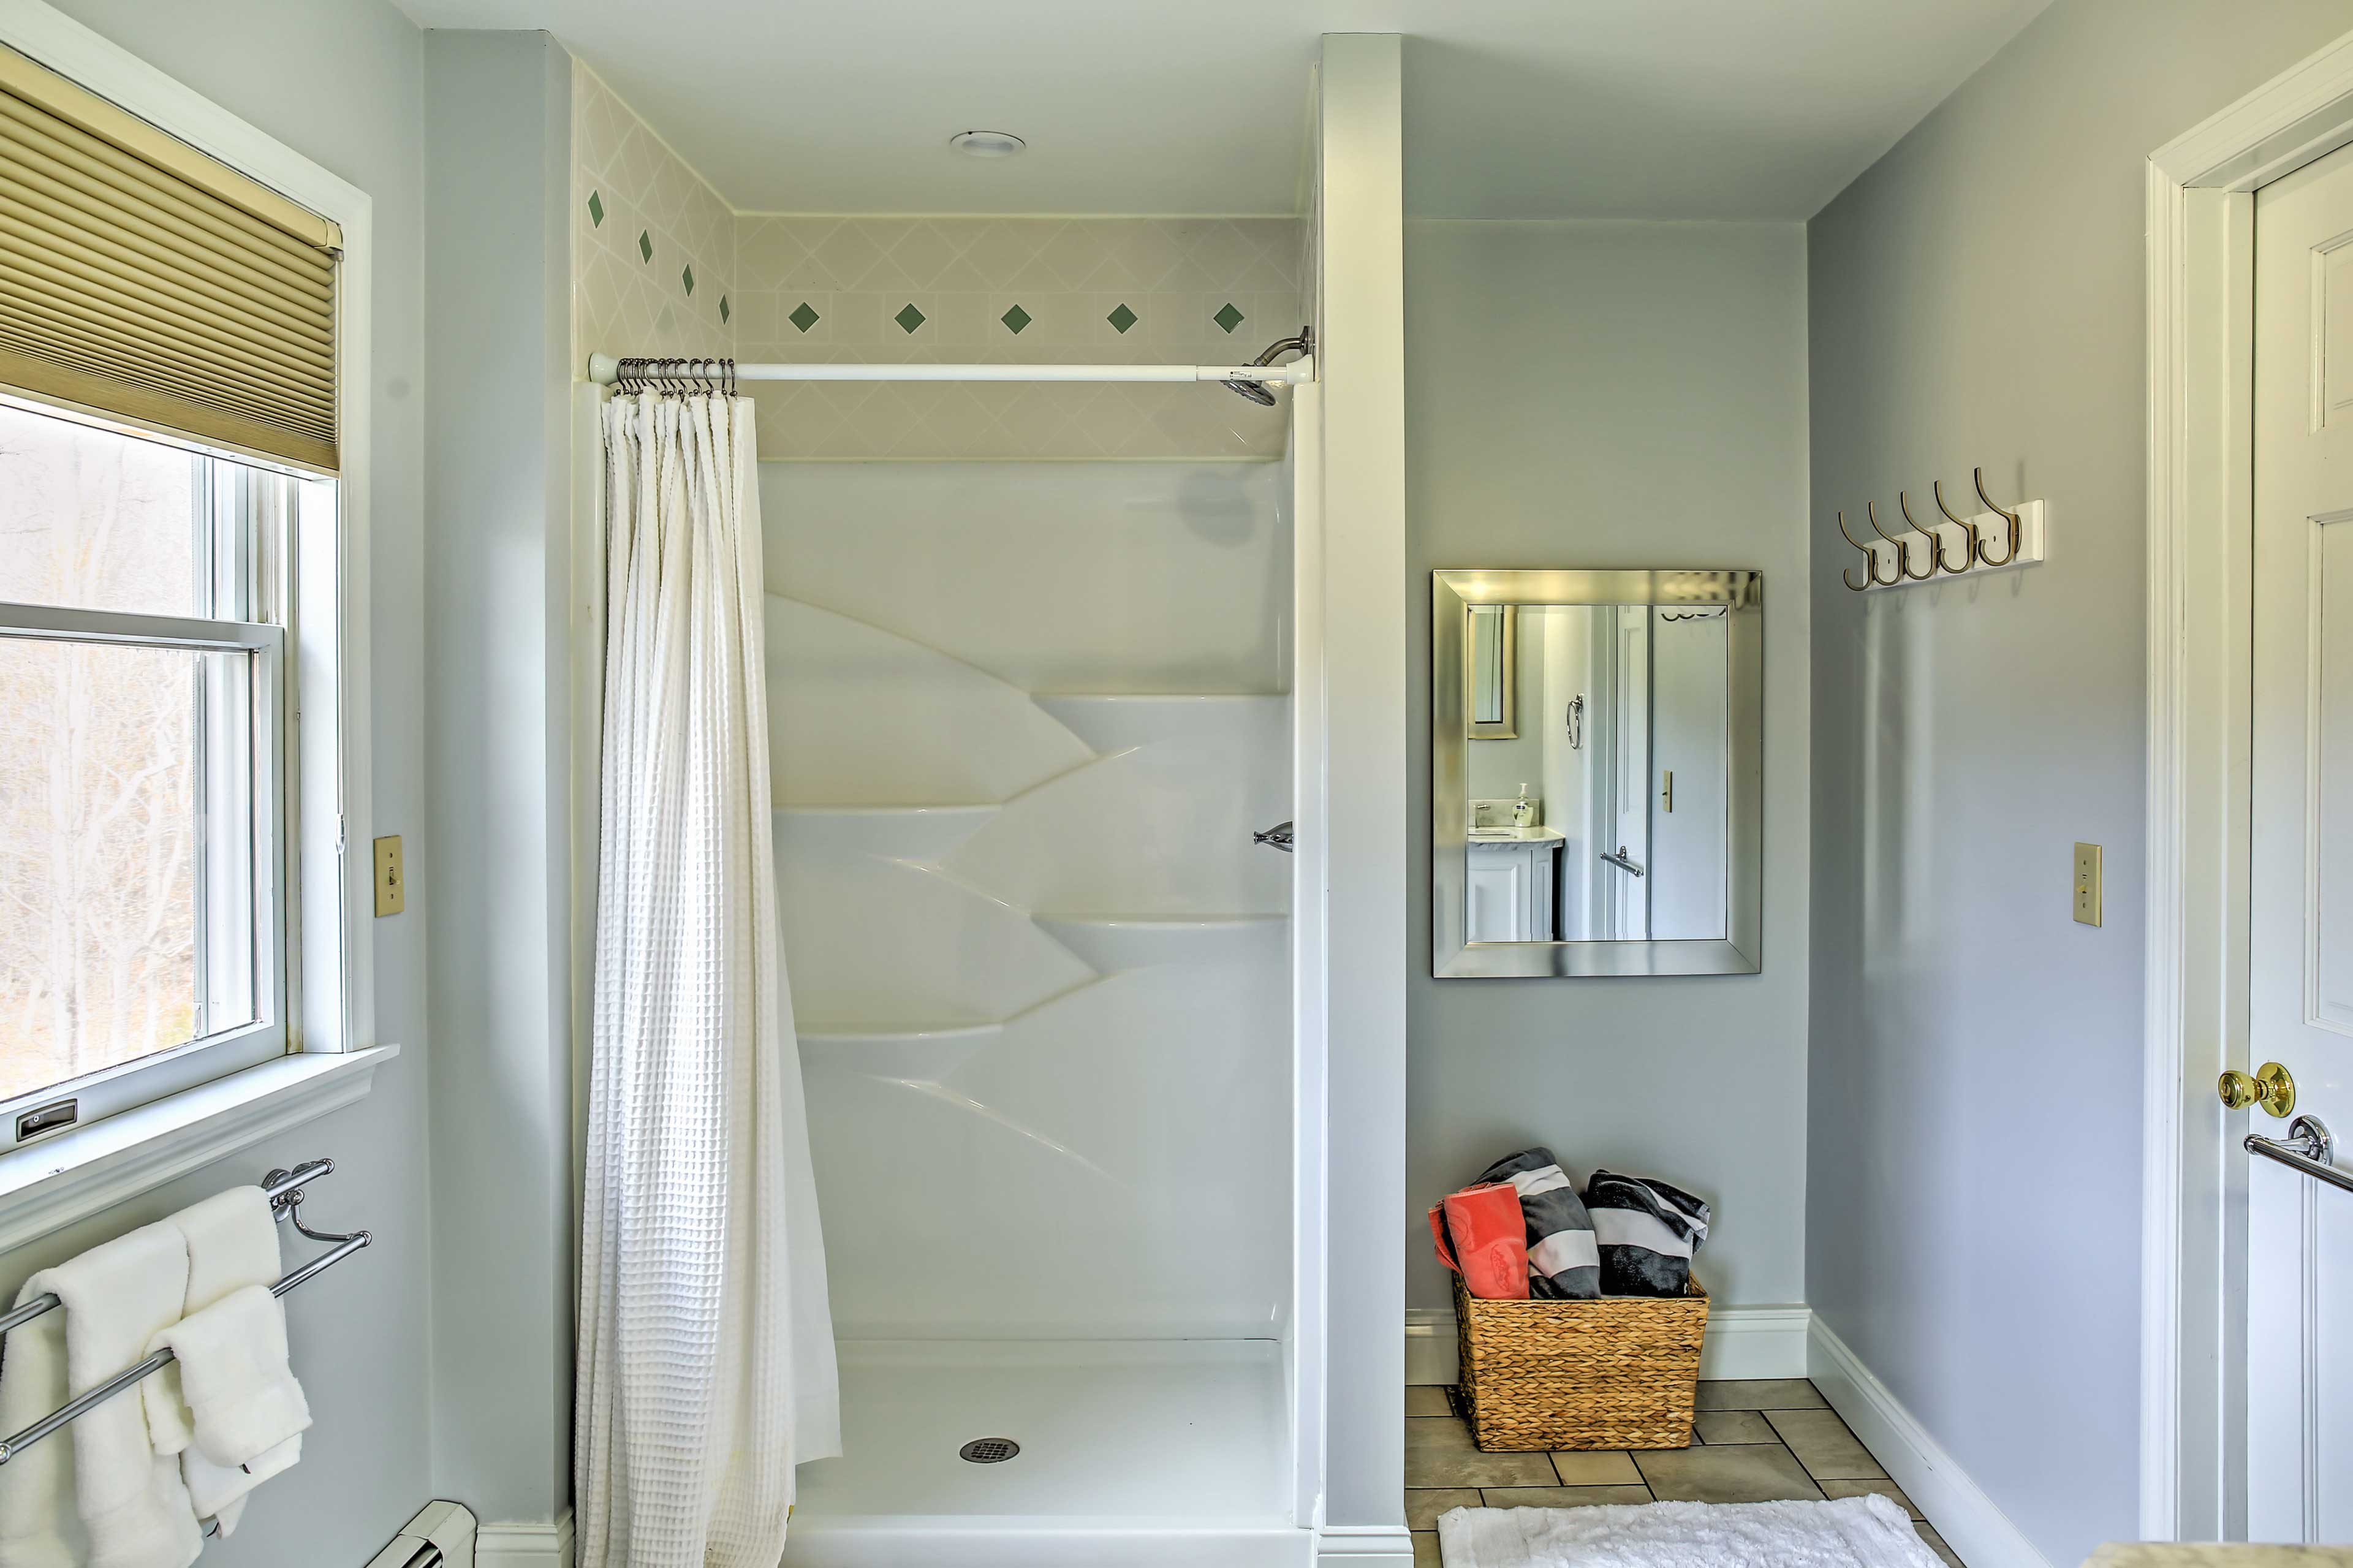 Wake up and rinse off in this shower.